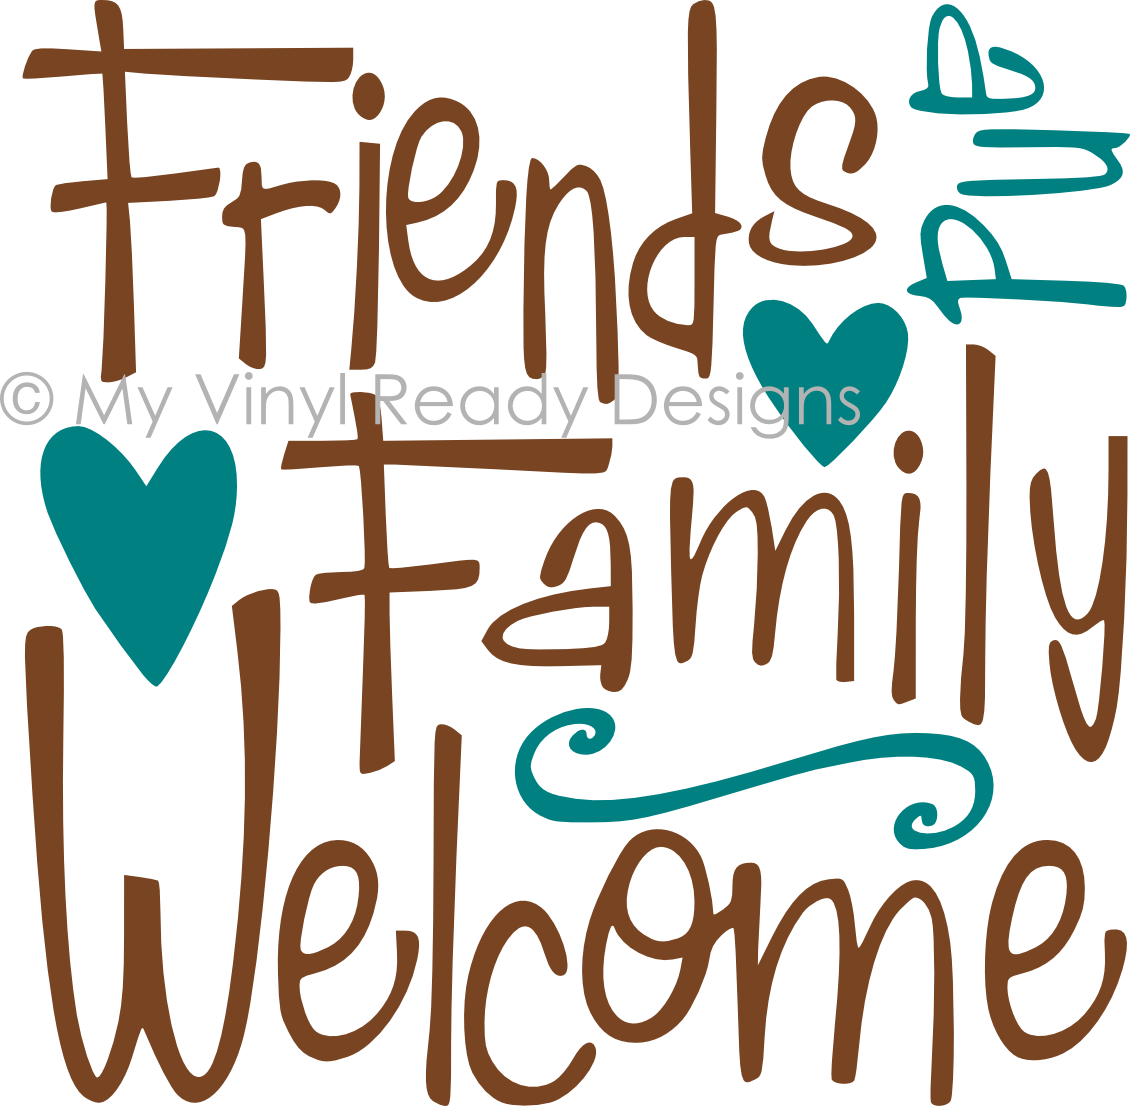 Friends and Family Welcome.